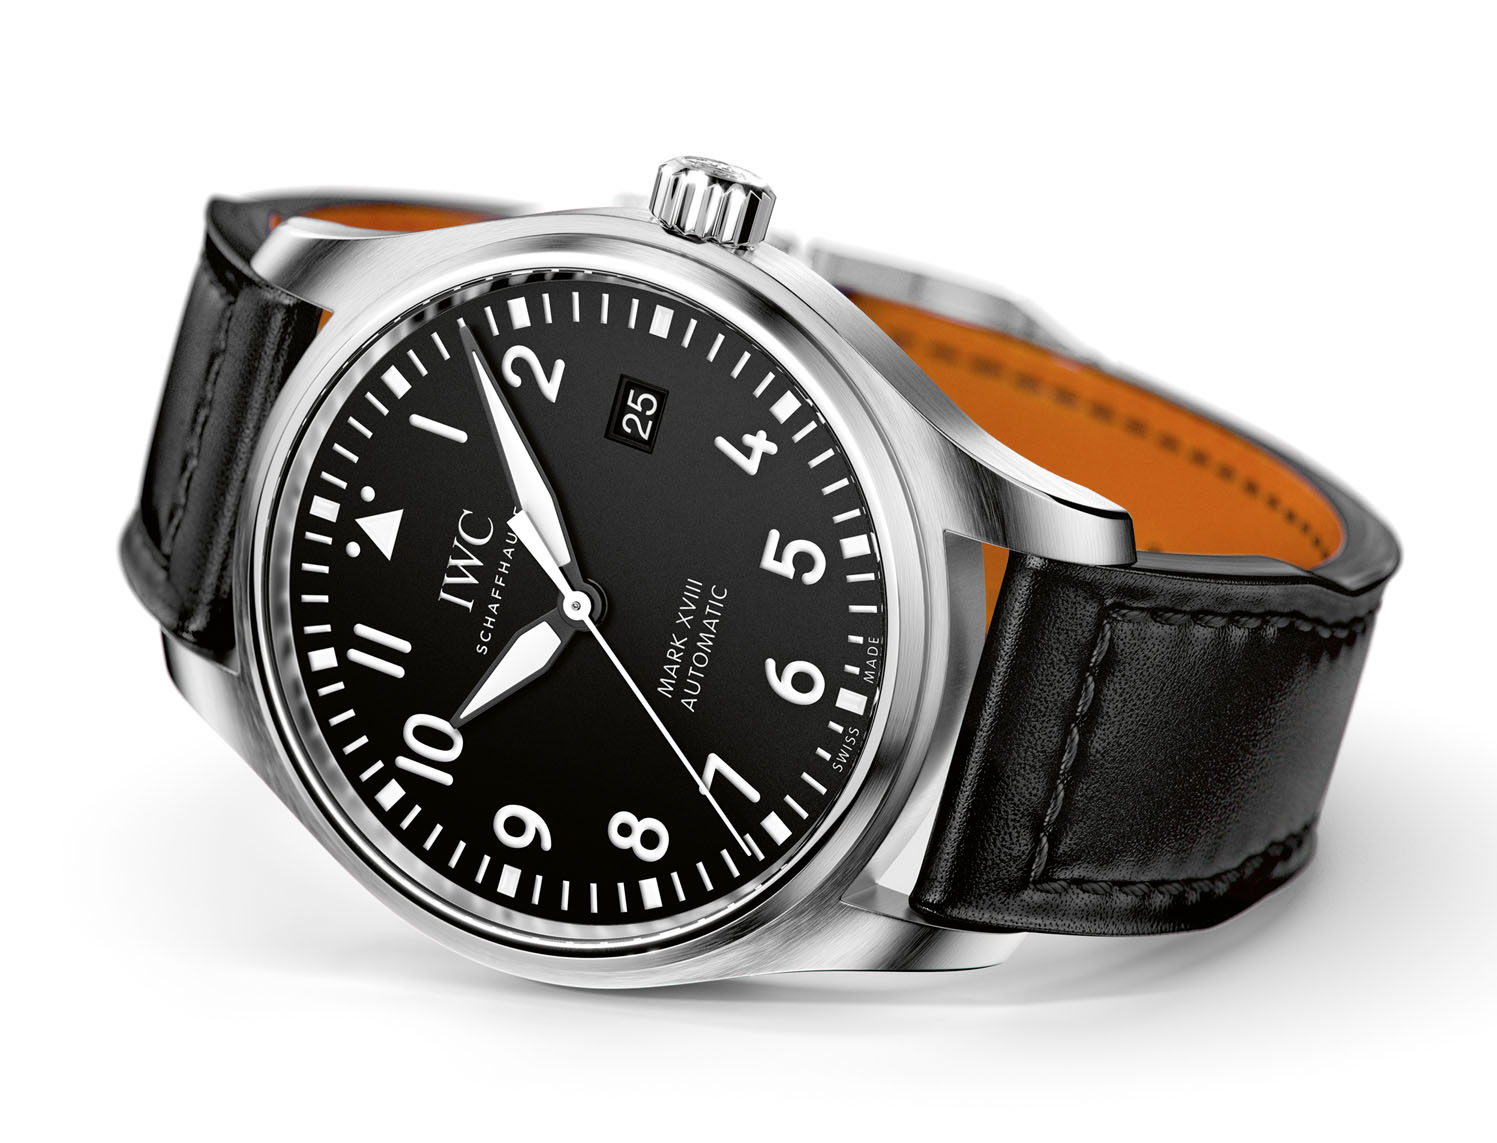 IWC Pilot's Watch Mark XVIII, IWC Pilot's Watch Mark XVIII IW327001, IWC Pilot's Watch Mark XVIII IW327002, IWC Pilot's Watch Mark XVIII IW327011, IW327001, IW327002, IW327011